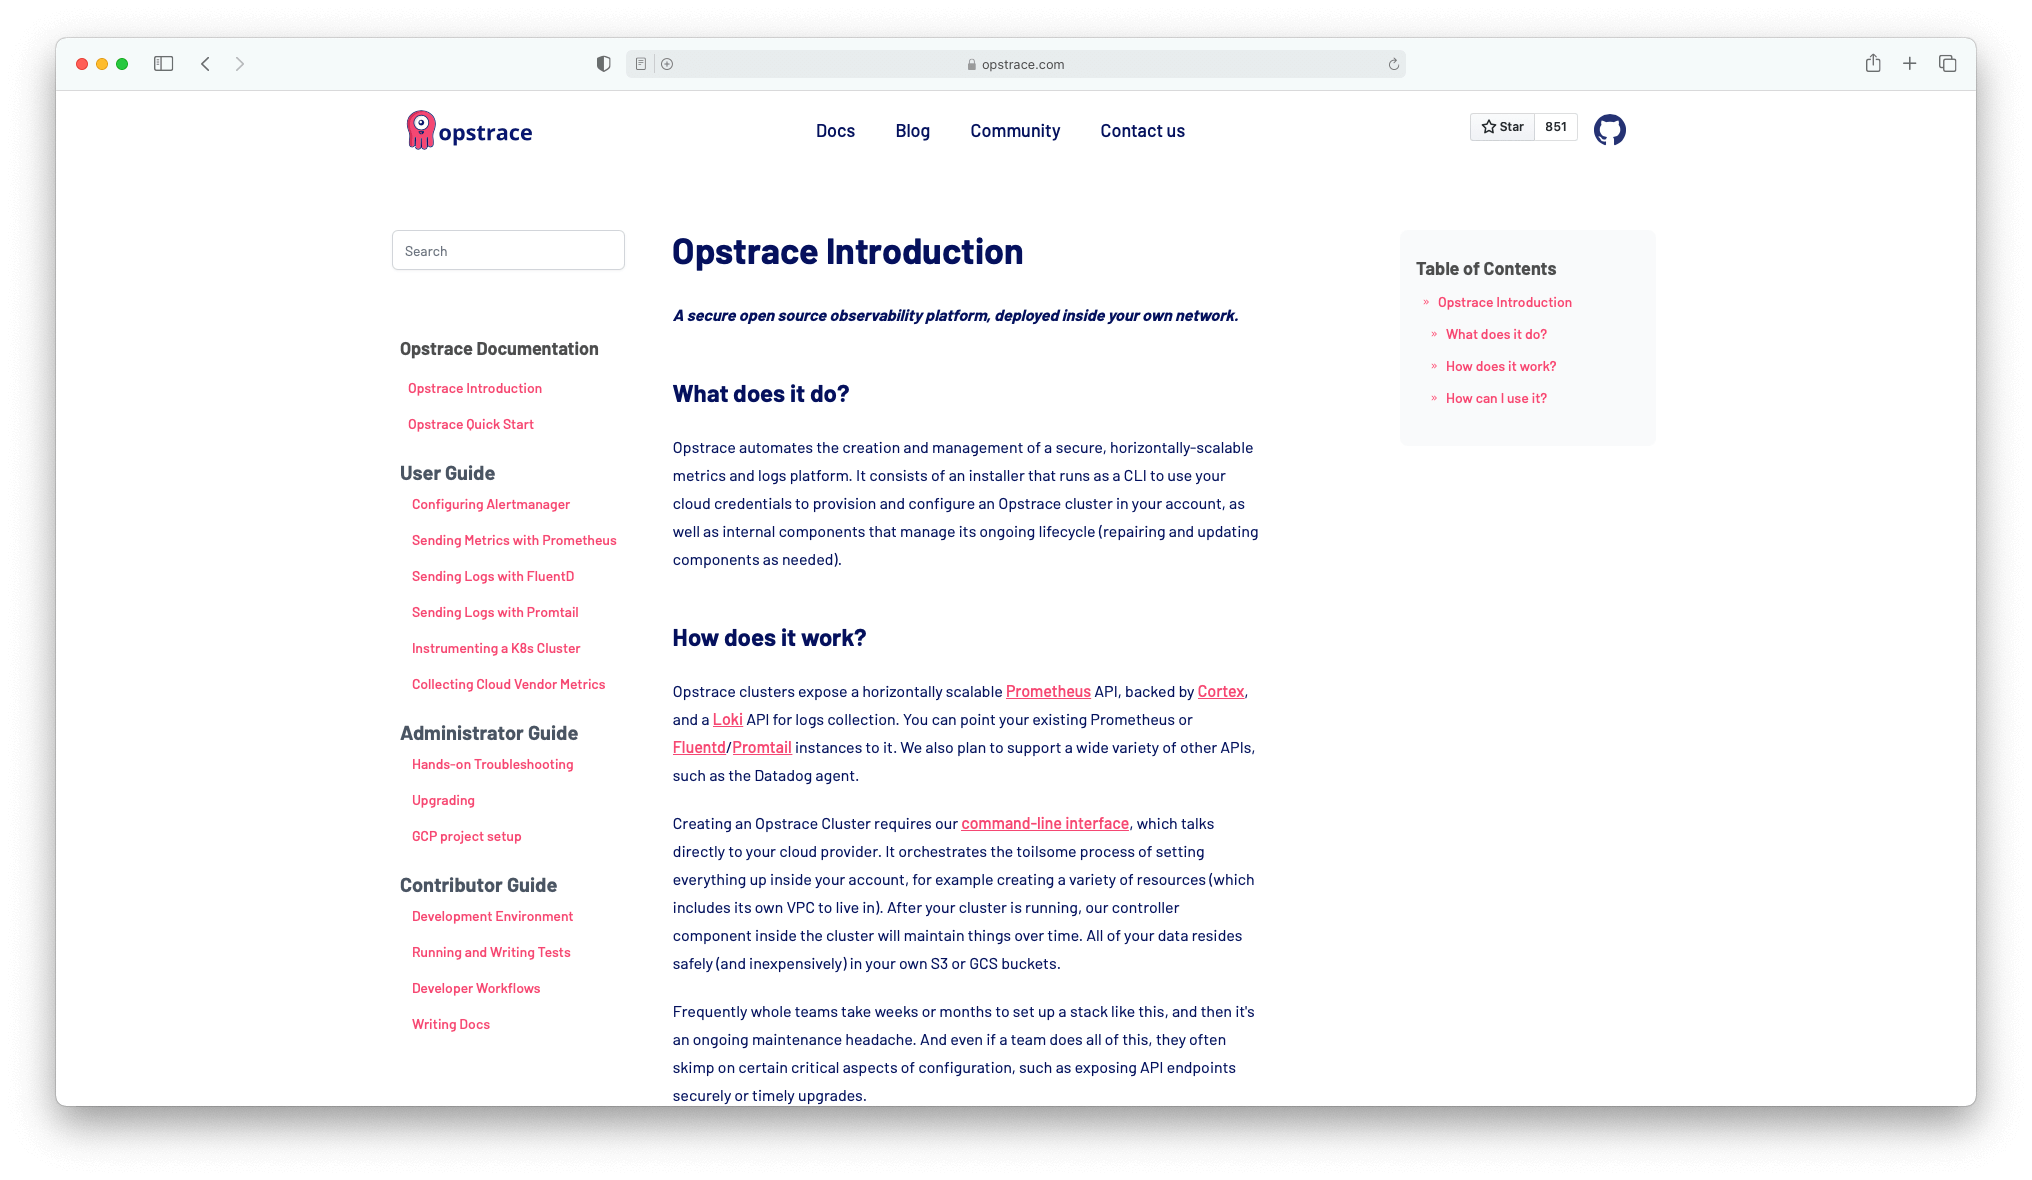 screenshot of the Opstrace documentation